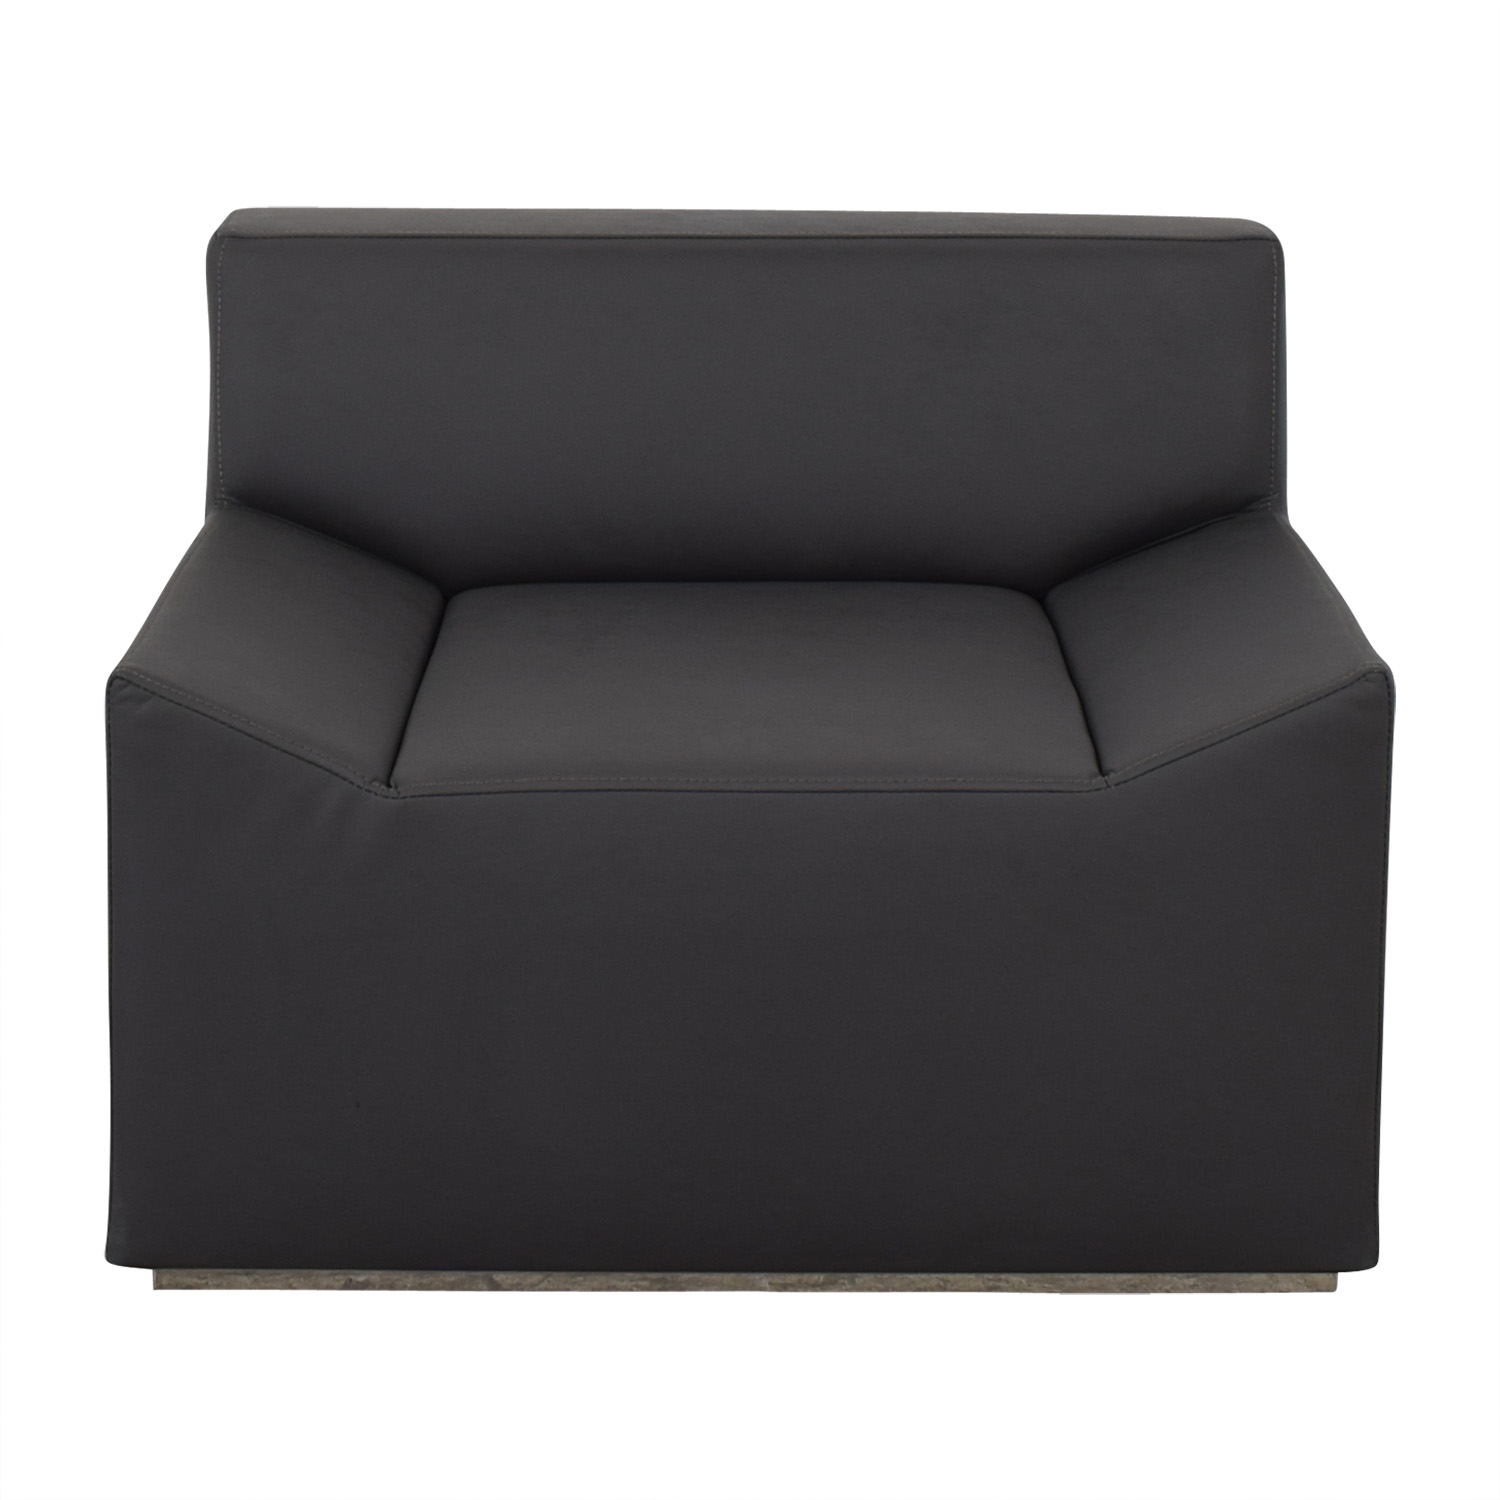 shop Blu Dot Blu Dot Couchoid Lounge Chair online